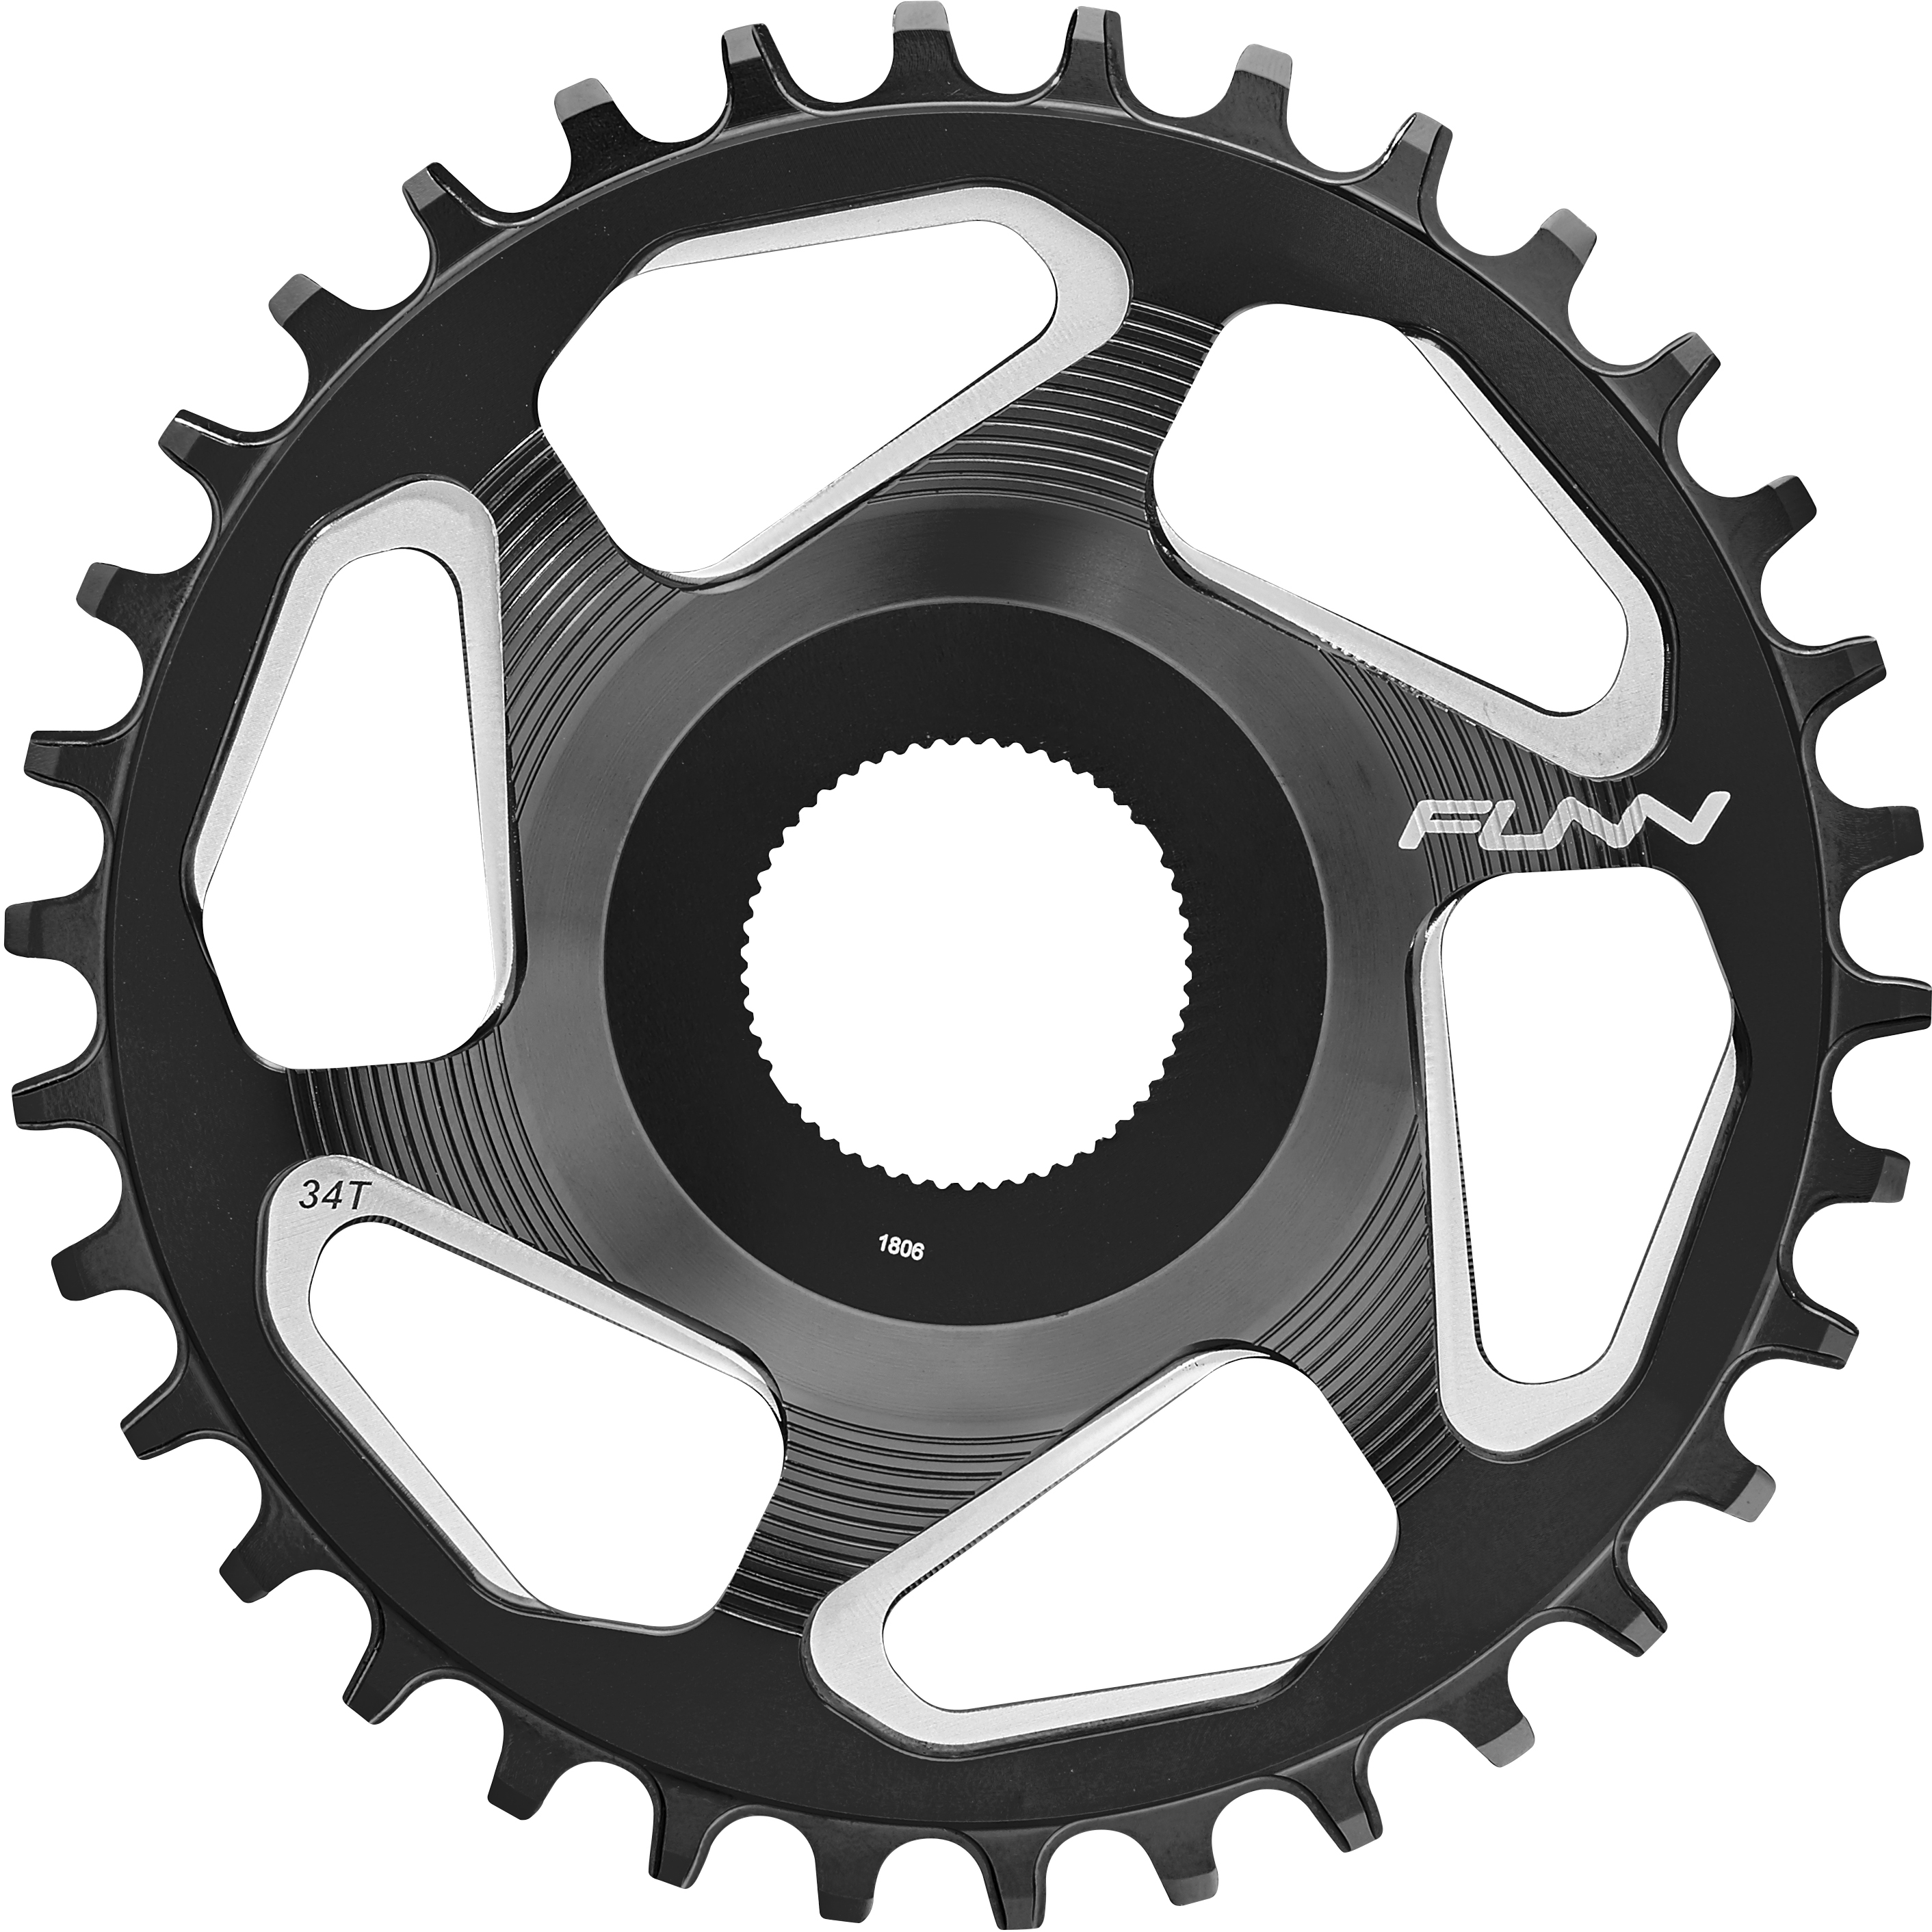 Funn Solo ES Narrow Wide Chainring | chainrings_component